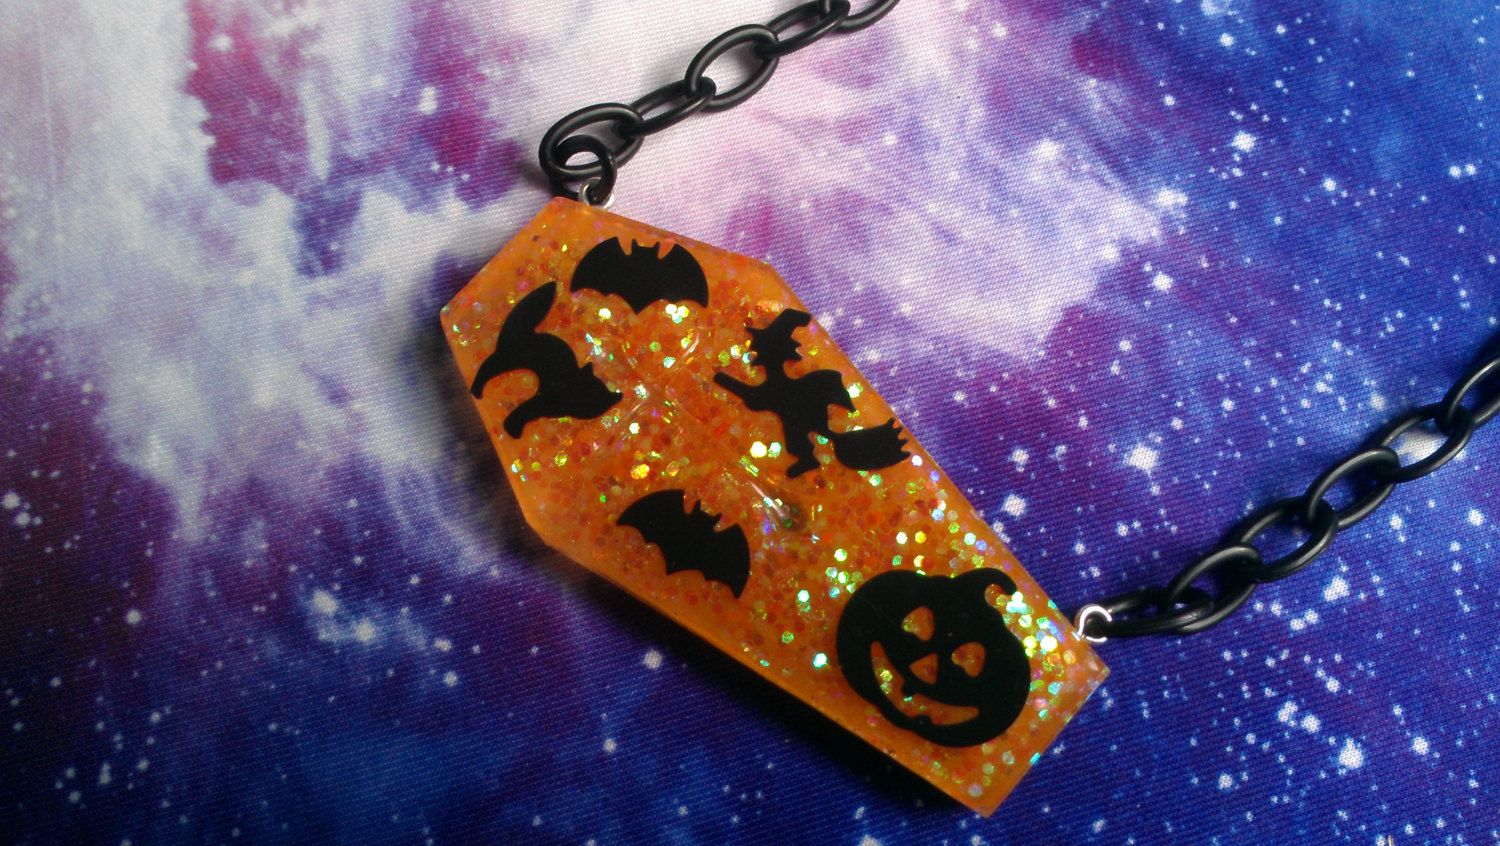 Halloween Coffin Resin Necklace, Pastel Goth, Creepy Cute, Horror by VixieAndMynx on Etsy